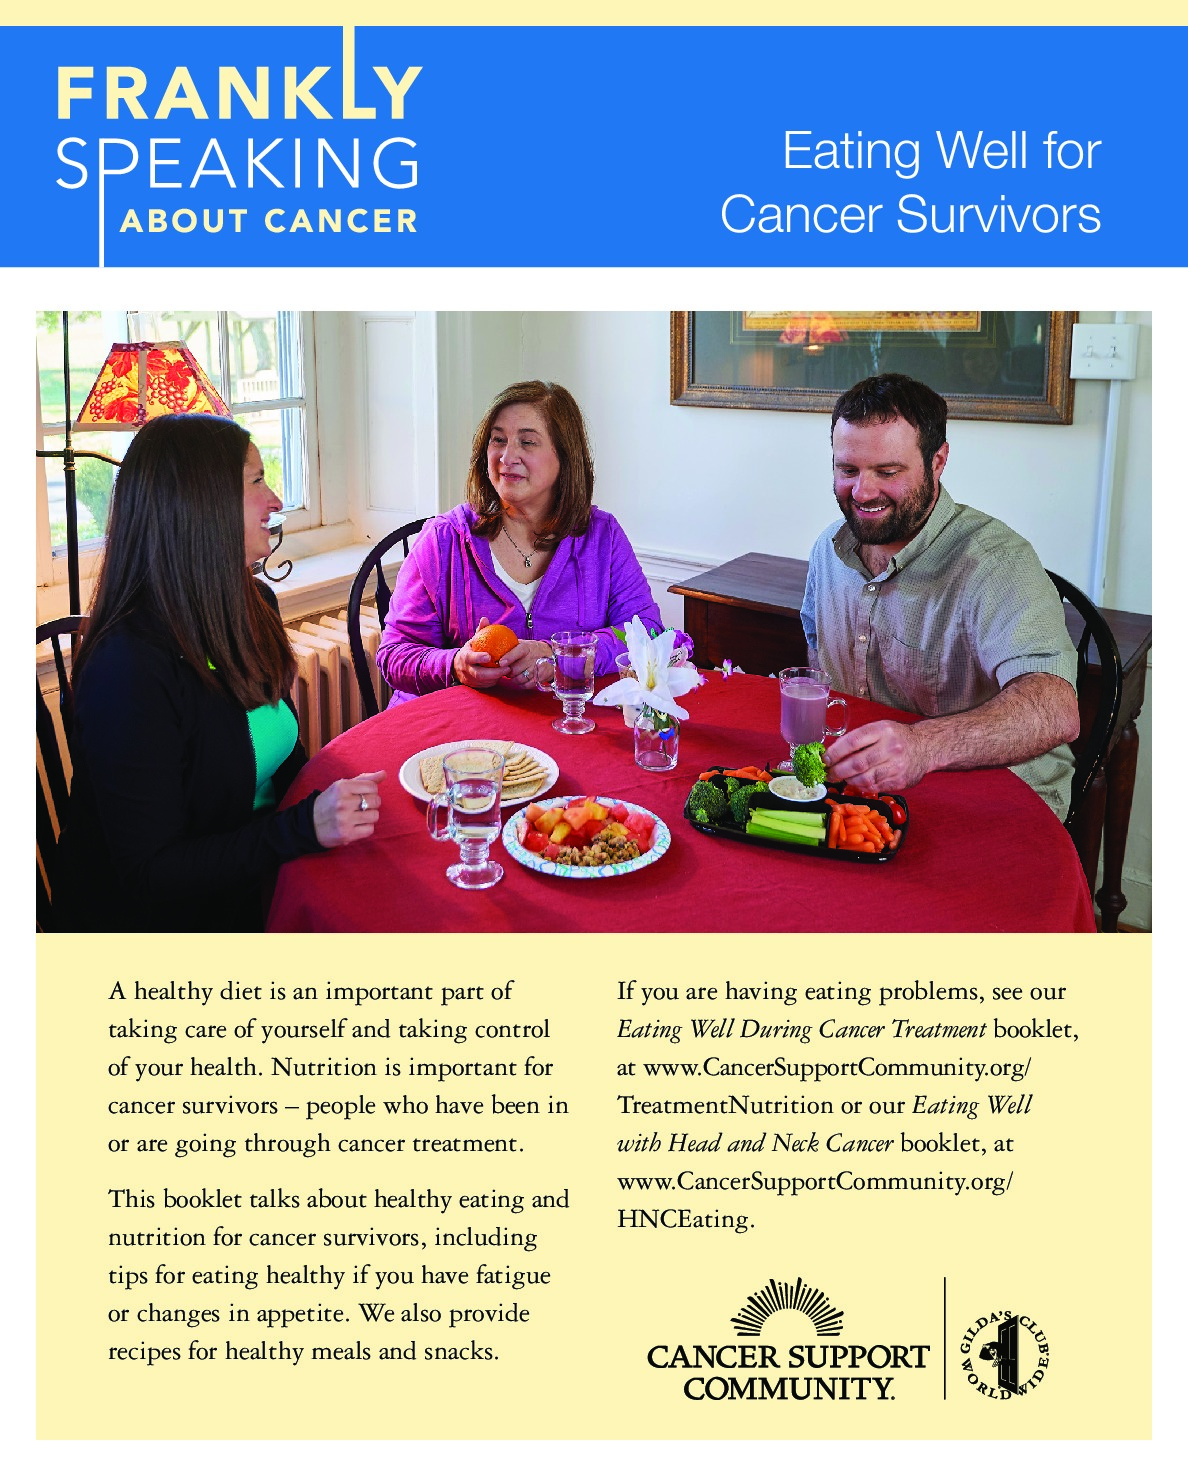 Frankly Speaking About Cancer: Eating Well for Cancer Survivors